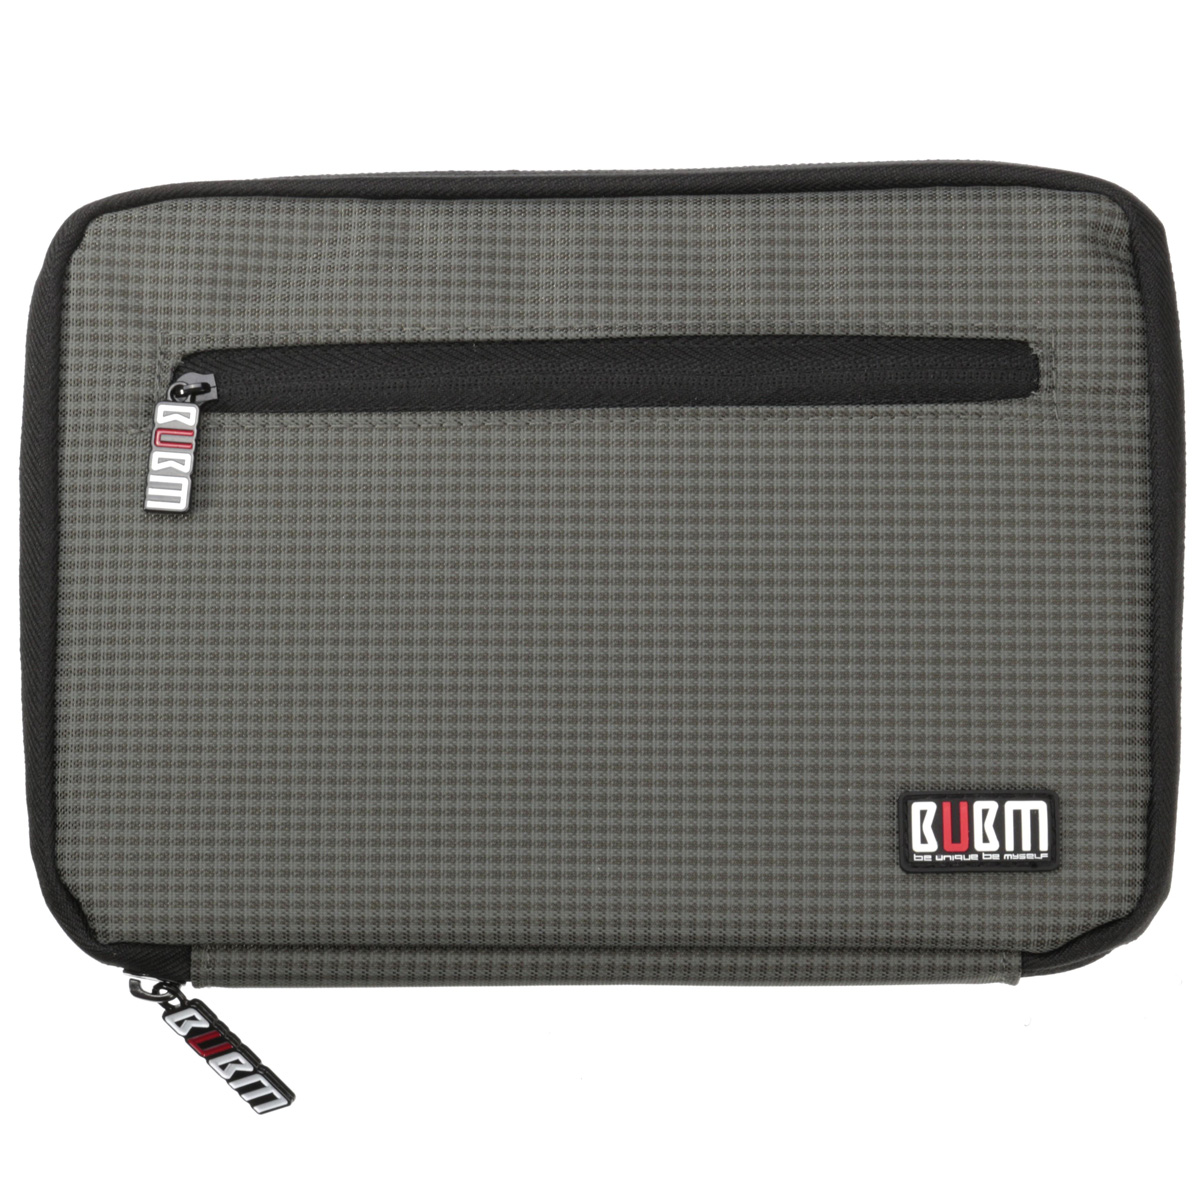 "BUBM Waterproof Nylon Storage Bag Organizer Case For iPad Mini eBook 8"" Tablet"